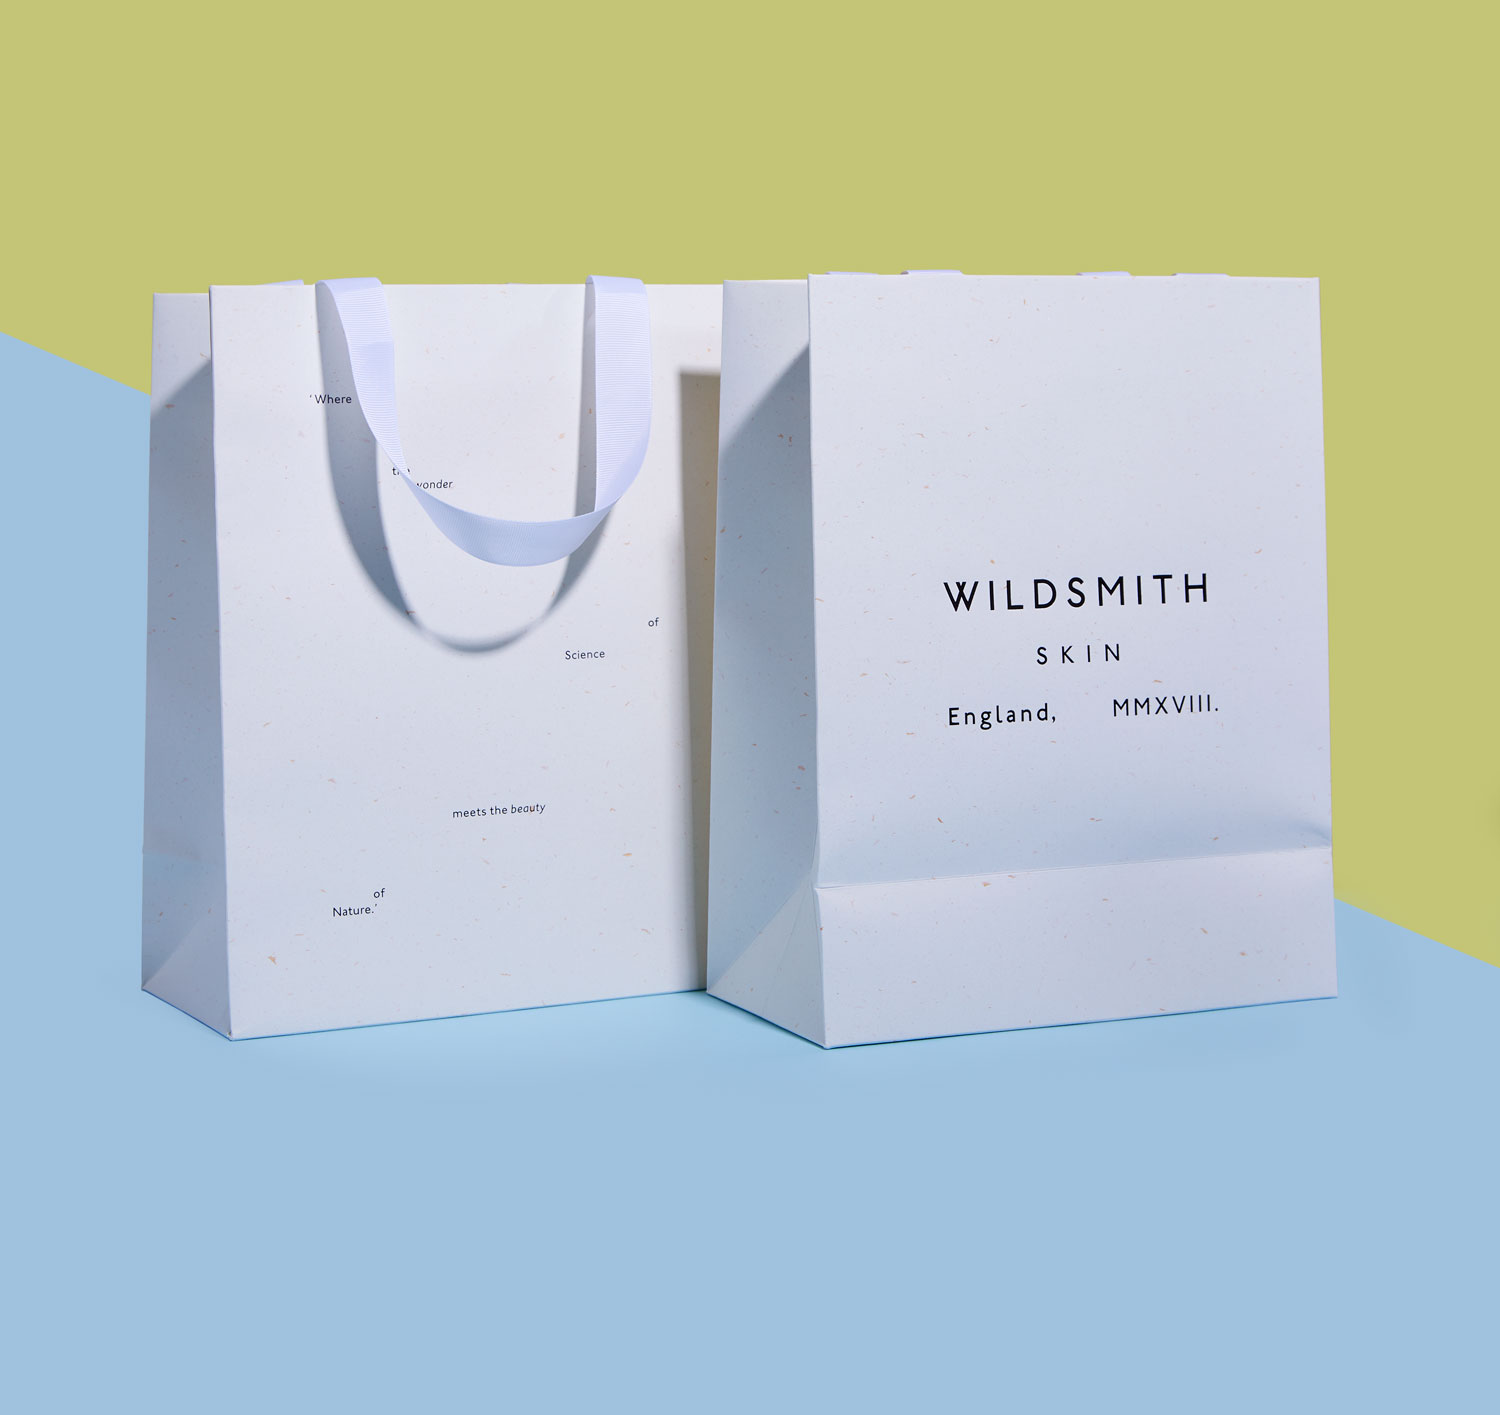 Progress Packaging Made Thought Skincare Recycled Papers Bags Environmentally Friendy Eco Accessories Custom Luxury Minimal Wildsmith Retail